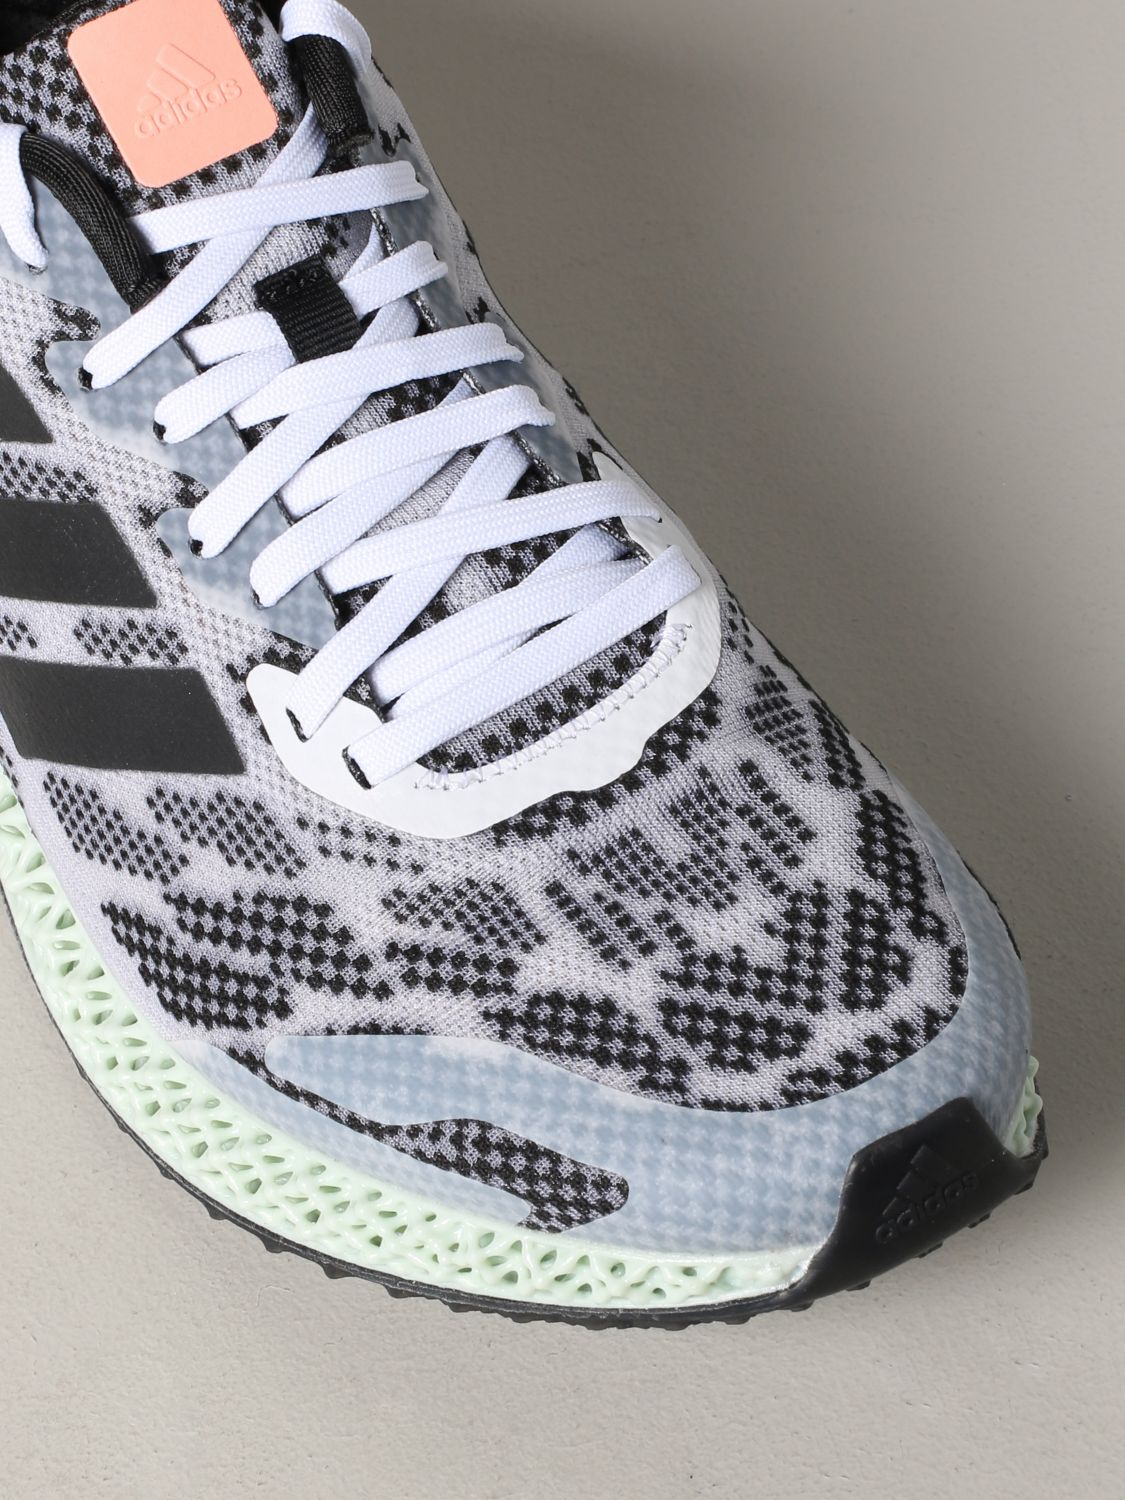 运动鞋 Adidas Originals: Adidas Originals 4d run 1.0 运动鞋 白色 4